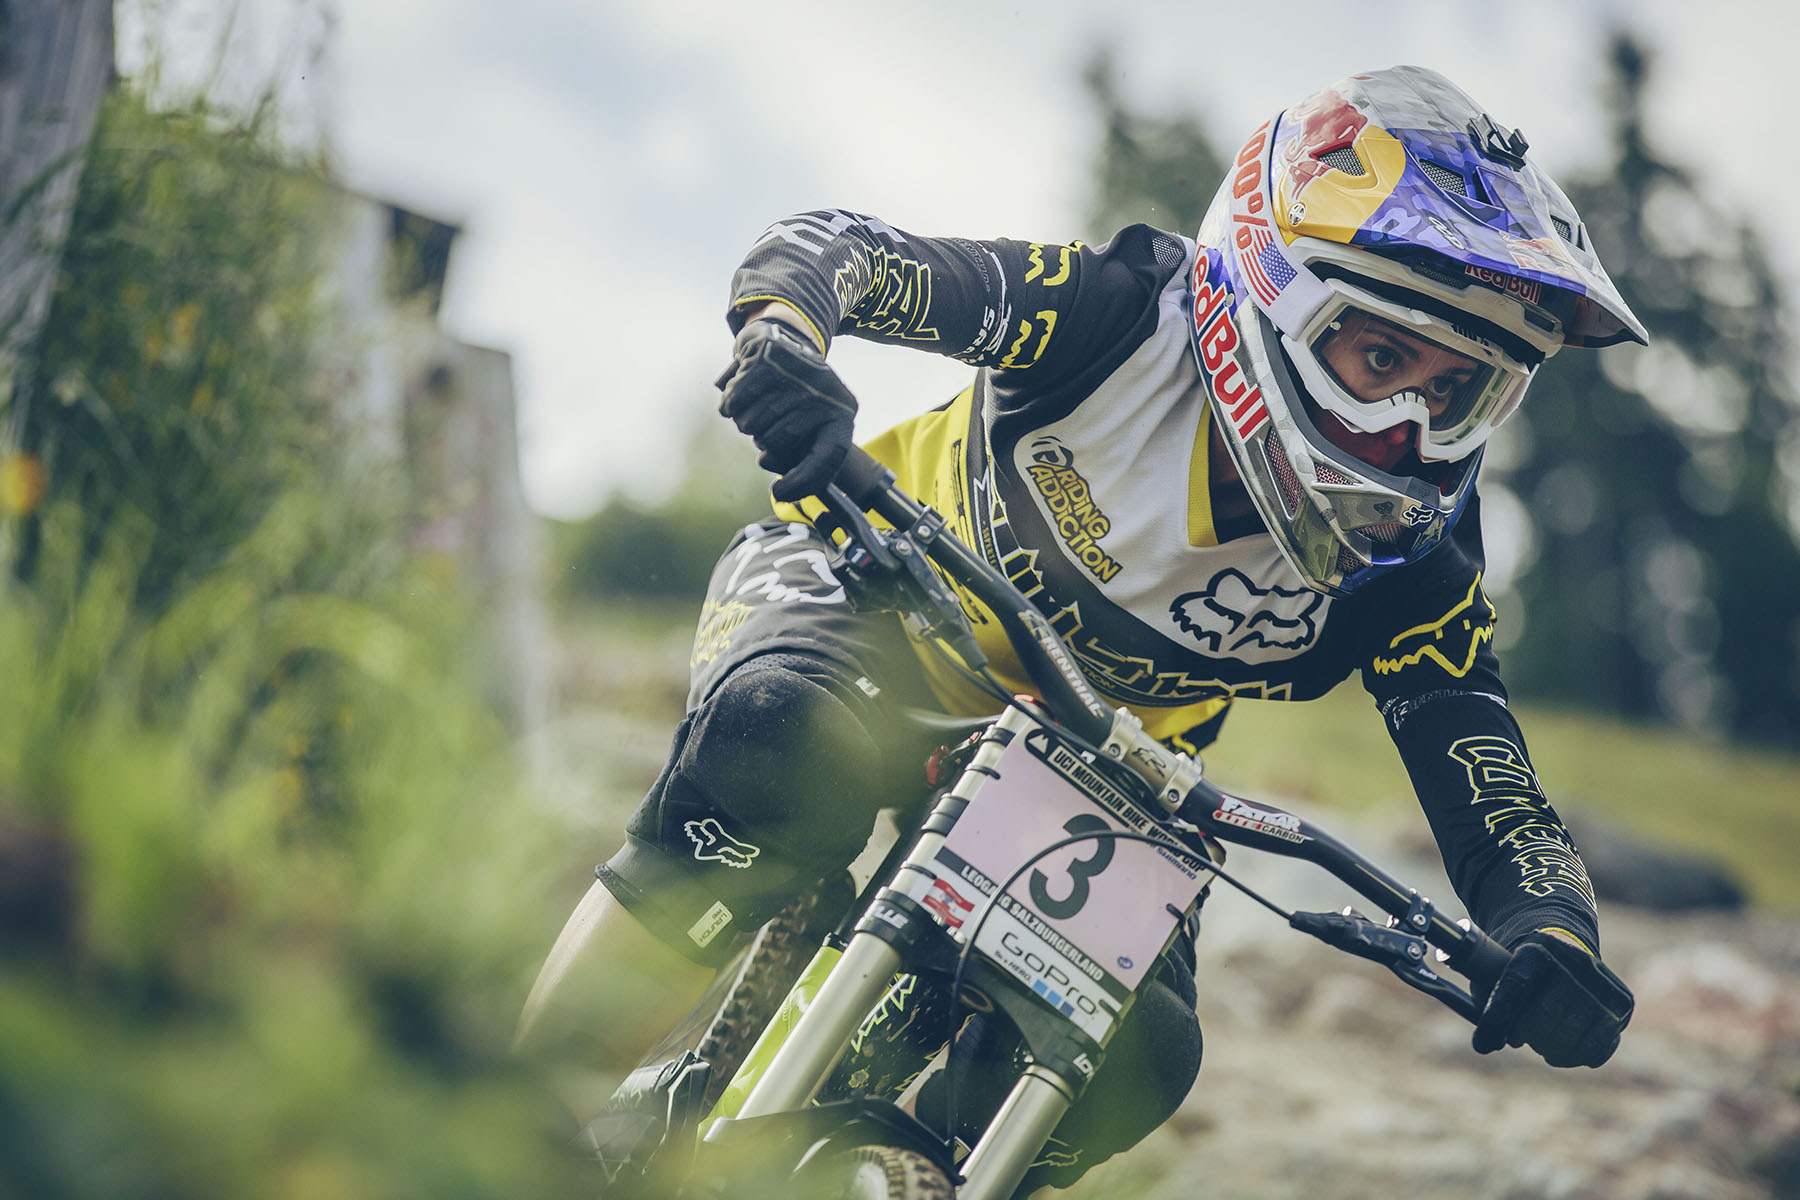 Myriam Nicole setting her season in motion last weekend with 2nd place at Fort William. Crossing the line today she bags herself another podium and putting her in closer reach for the overall. She talks about her 3rd place run.